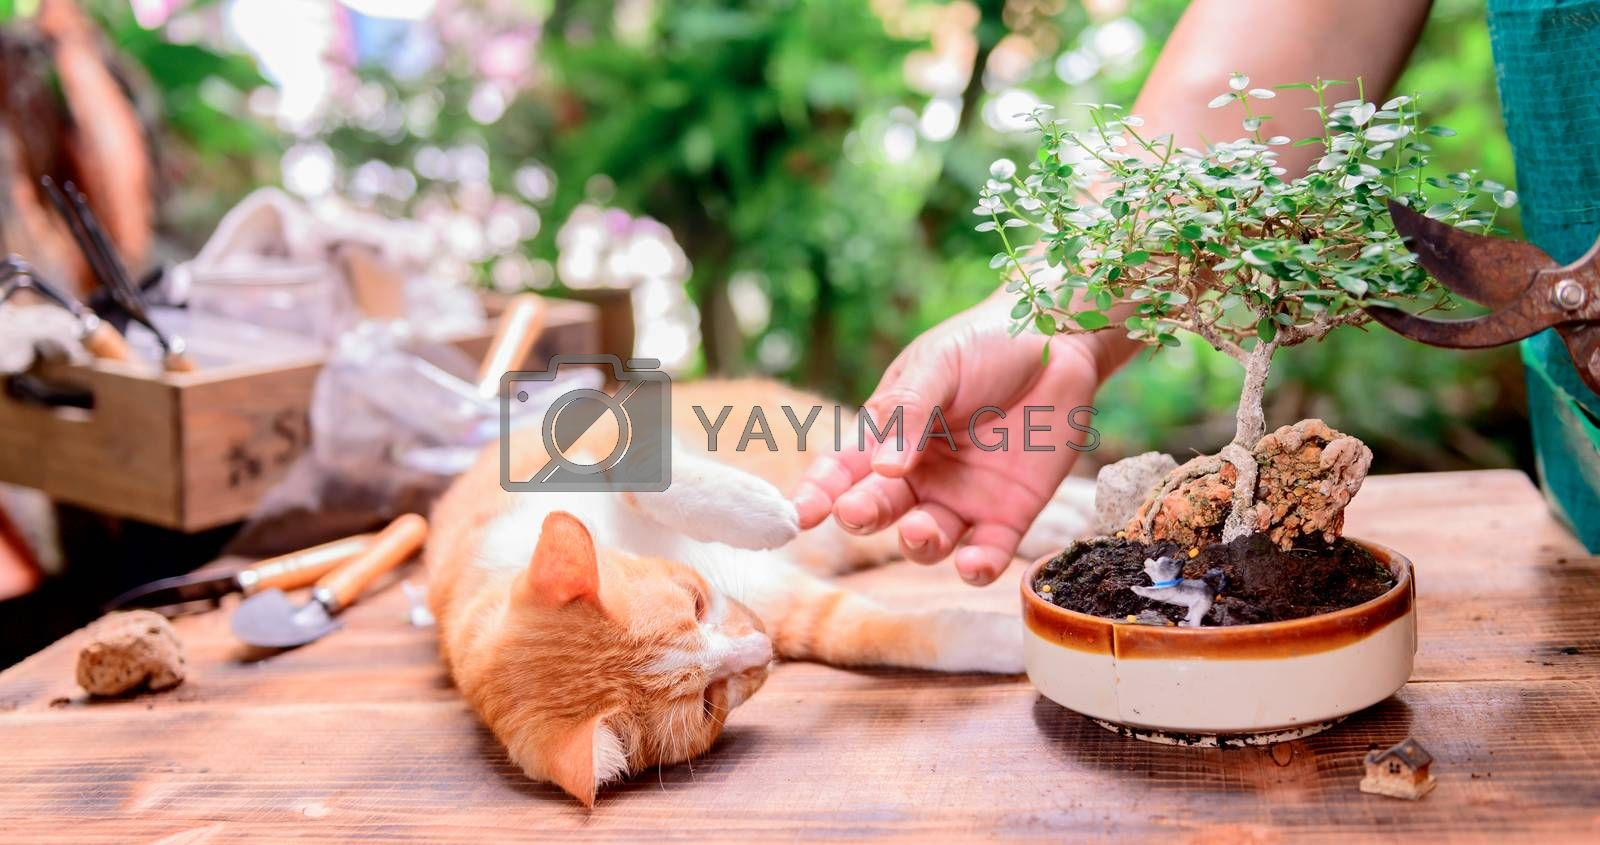 Home gardening with cat when Lock down and Self-quarantine. Recreation activity at botanic garden during the Corona virus crisis. Stay home for relax and Social distancing. by graphixchon